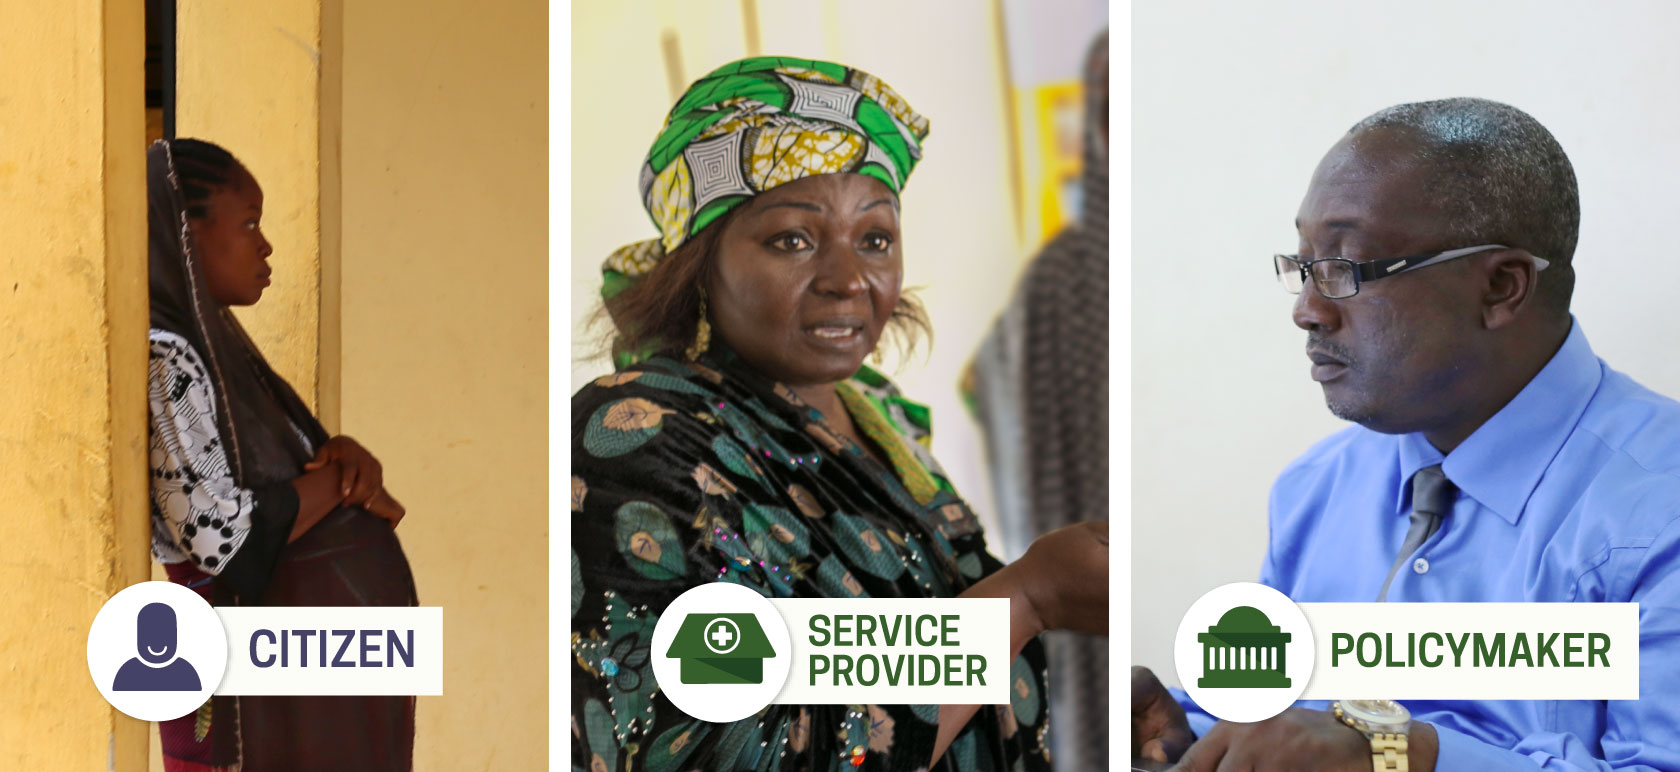 A photo of the three types of actors we worked with: citizens, service providers, and policymakers